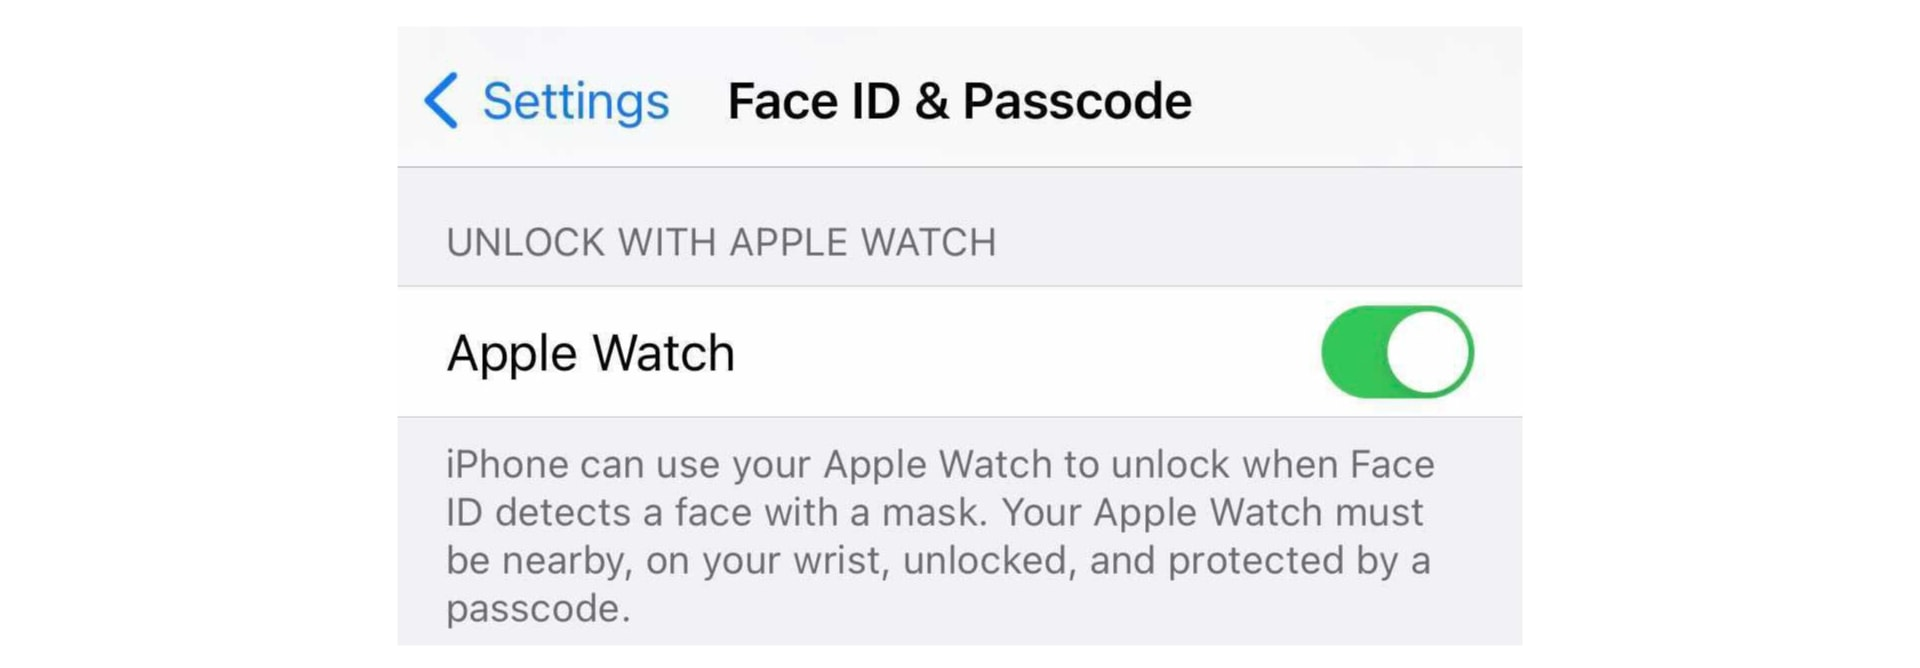 Unlock iPhone with Apple Watch